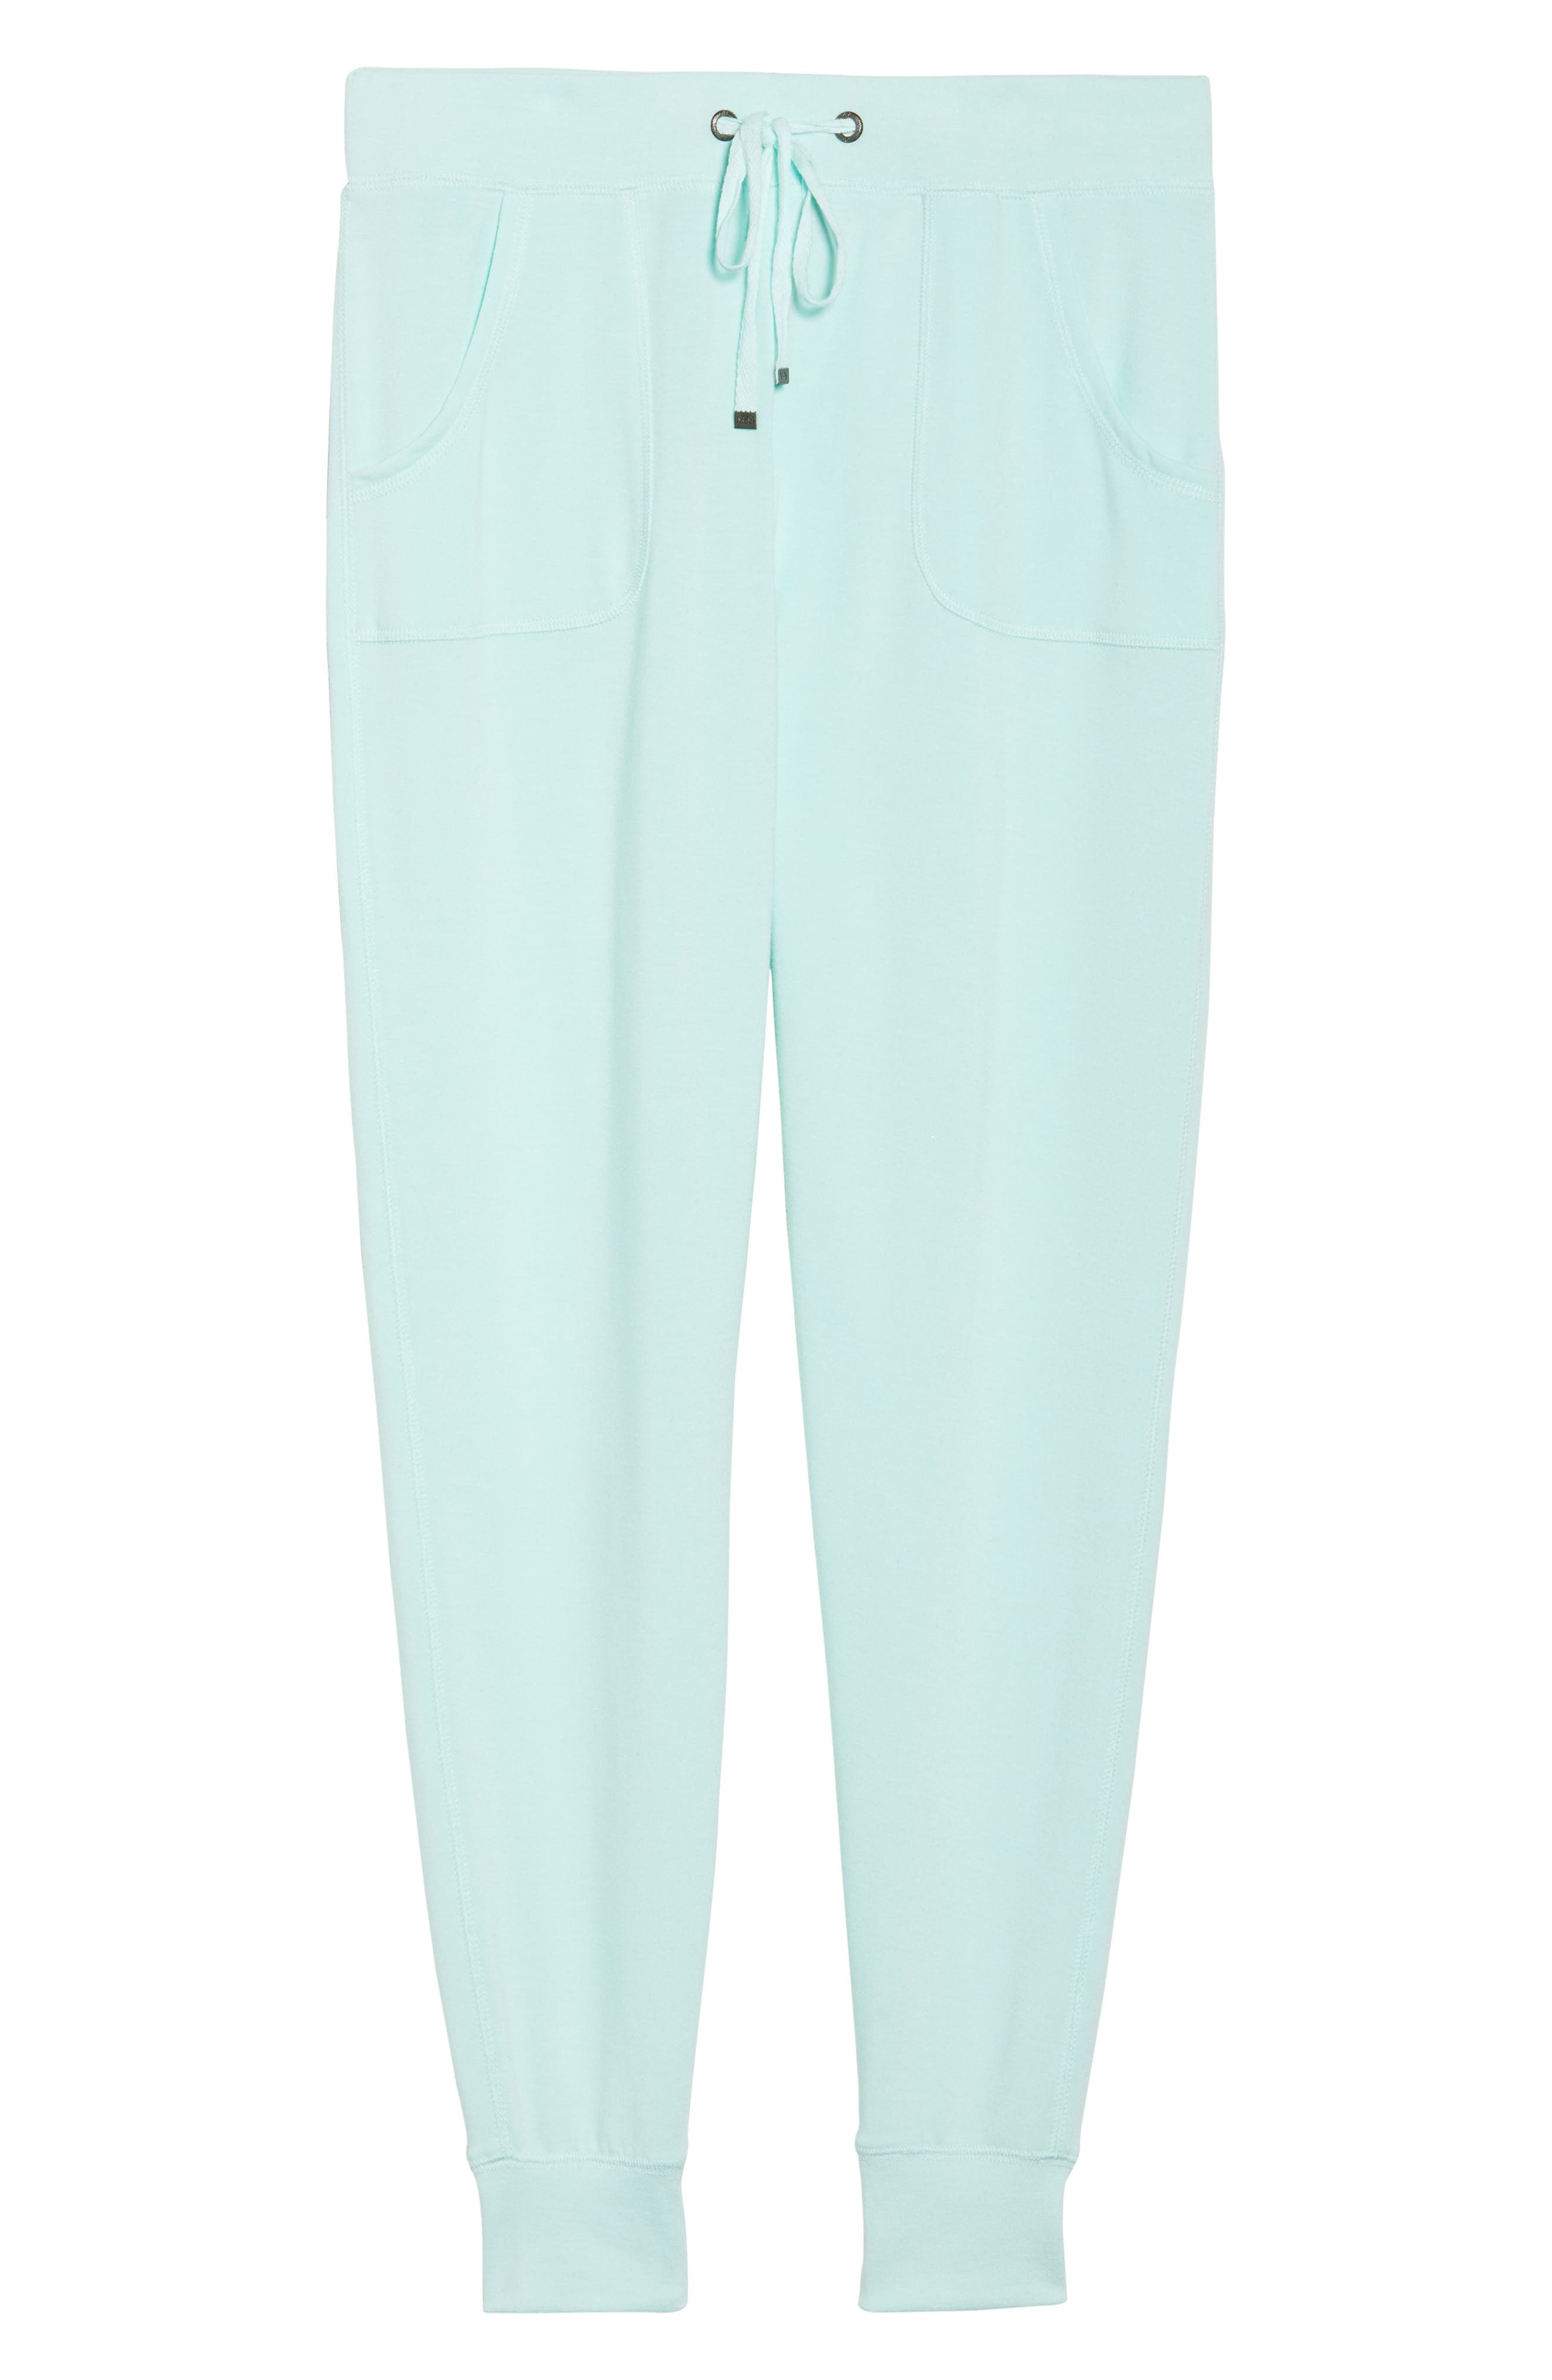 All About It Lounge Pants,                             Alternate thumbnail 37, color,